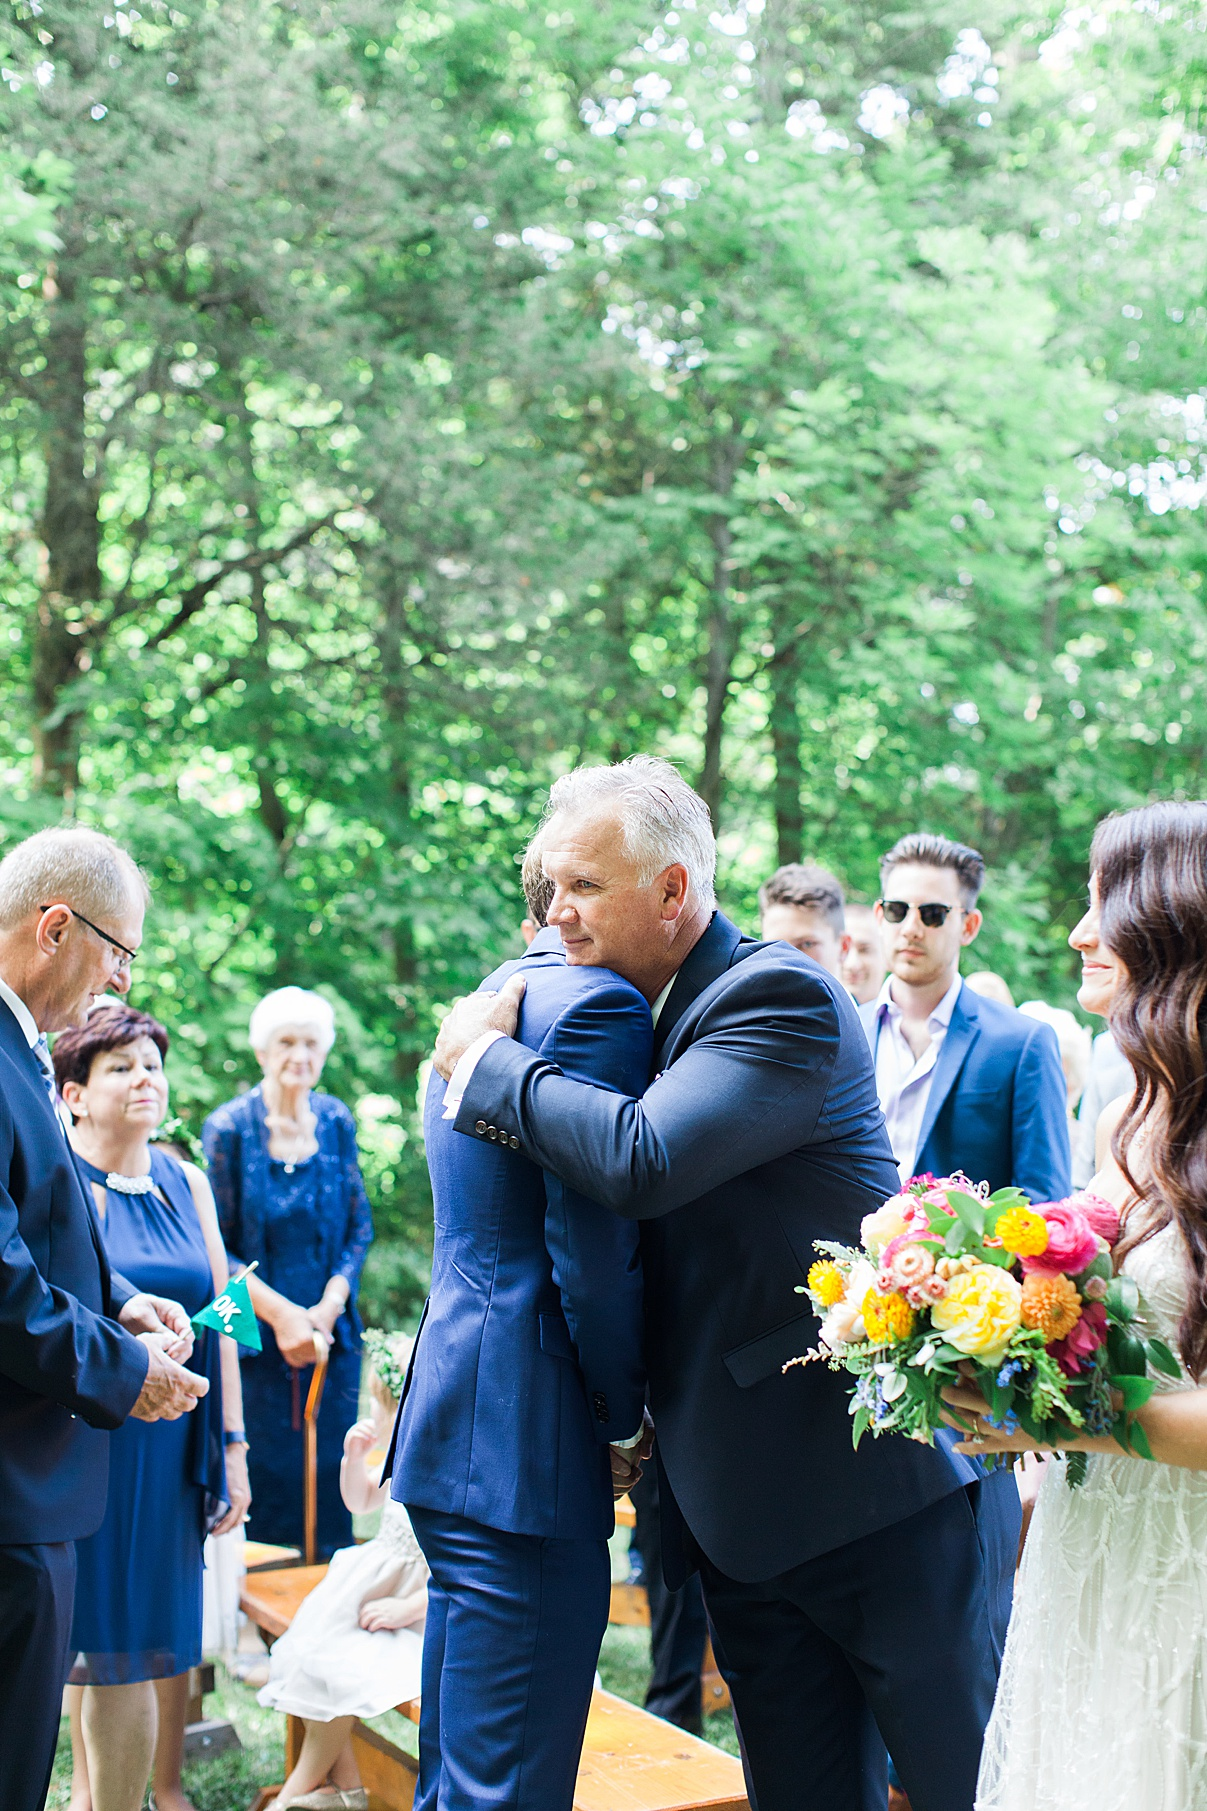 Groom hugs father of the bride at Balls Falls Wedding|Hollie and Brian| Balls Falls, Ontario Wedding| Ontario Wedding Photographer| Toronto Wedding Photographer| 3Photography| 3photography.ca